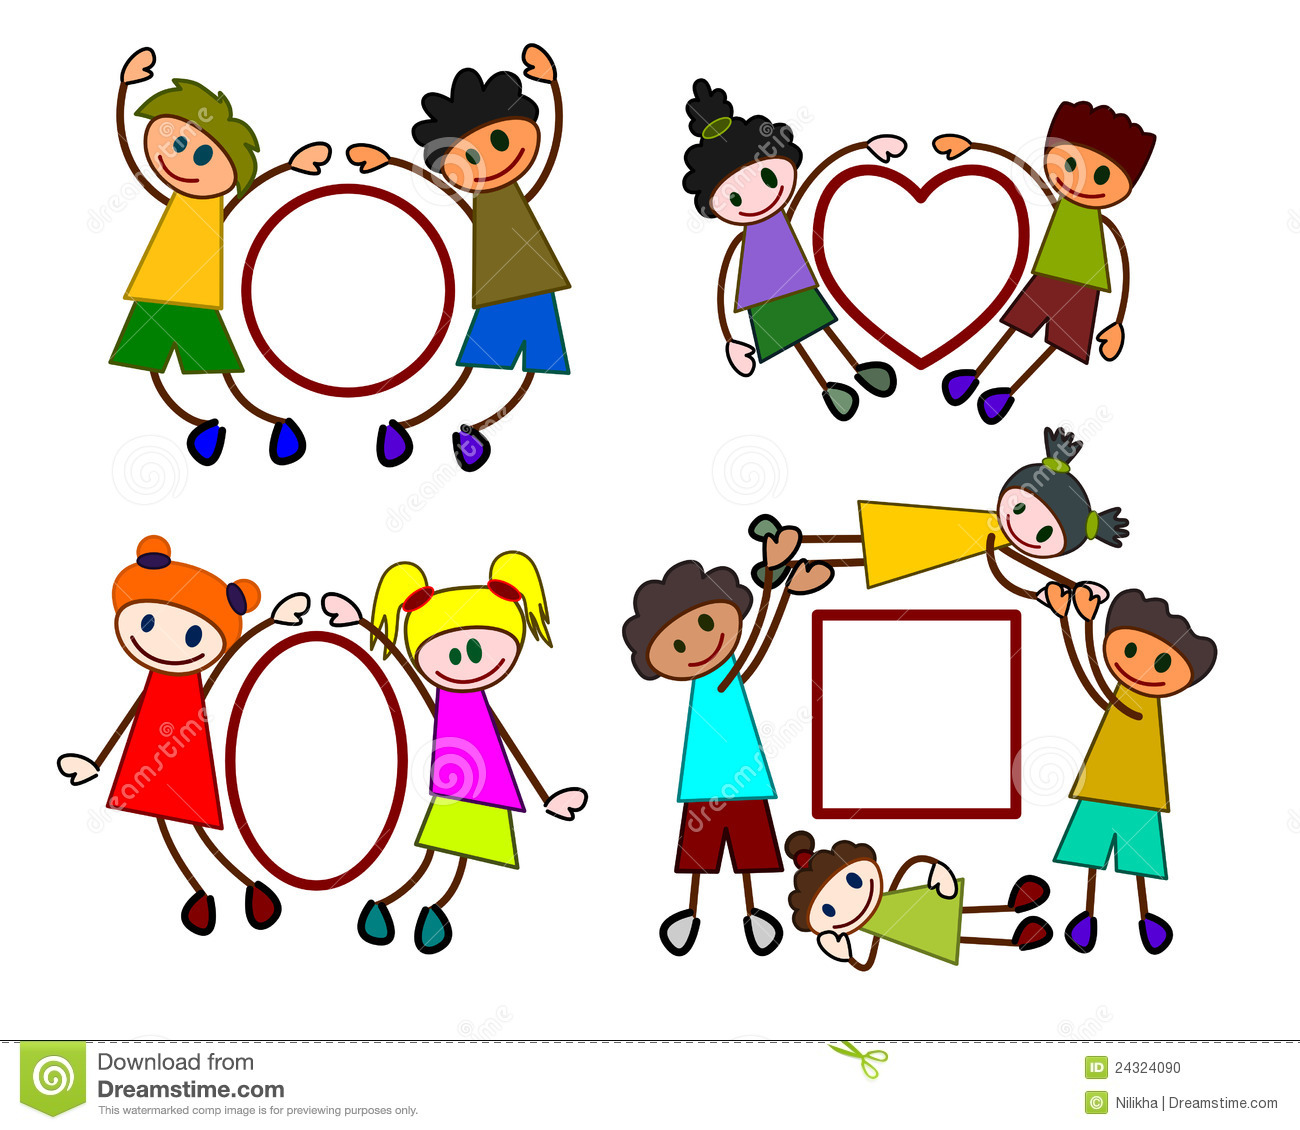 Kiddie Clipart 20 Free Cliparts  Download Images On Clipground 2020-8278